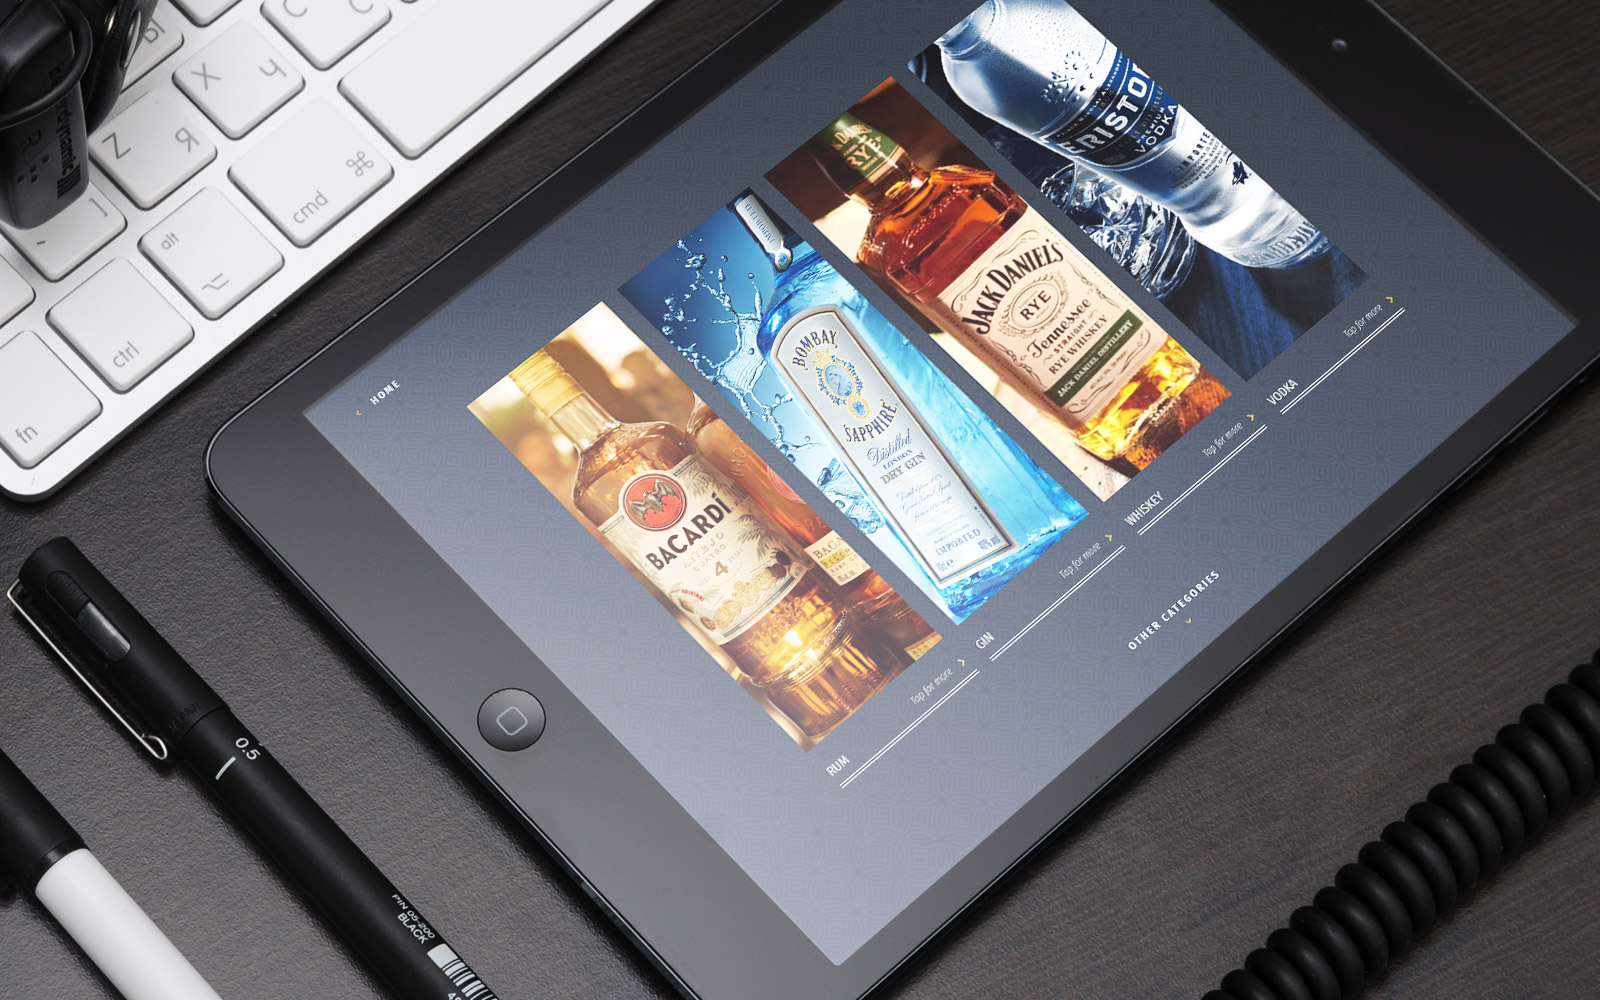 Black iPad displaying Bacardi Limited interactive touchscreen sales enablement tool showing Bombay Sapphire Jack Daniels Eristoff Vodka